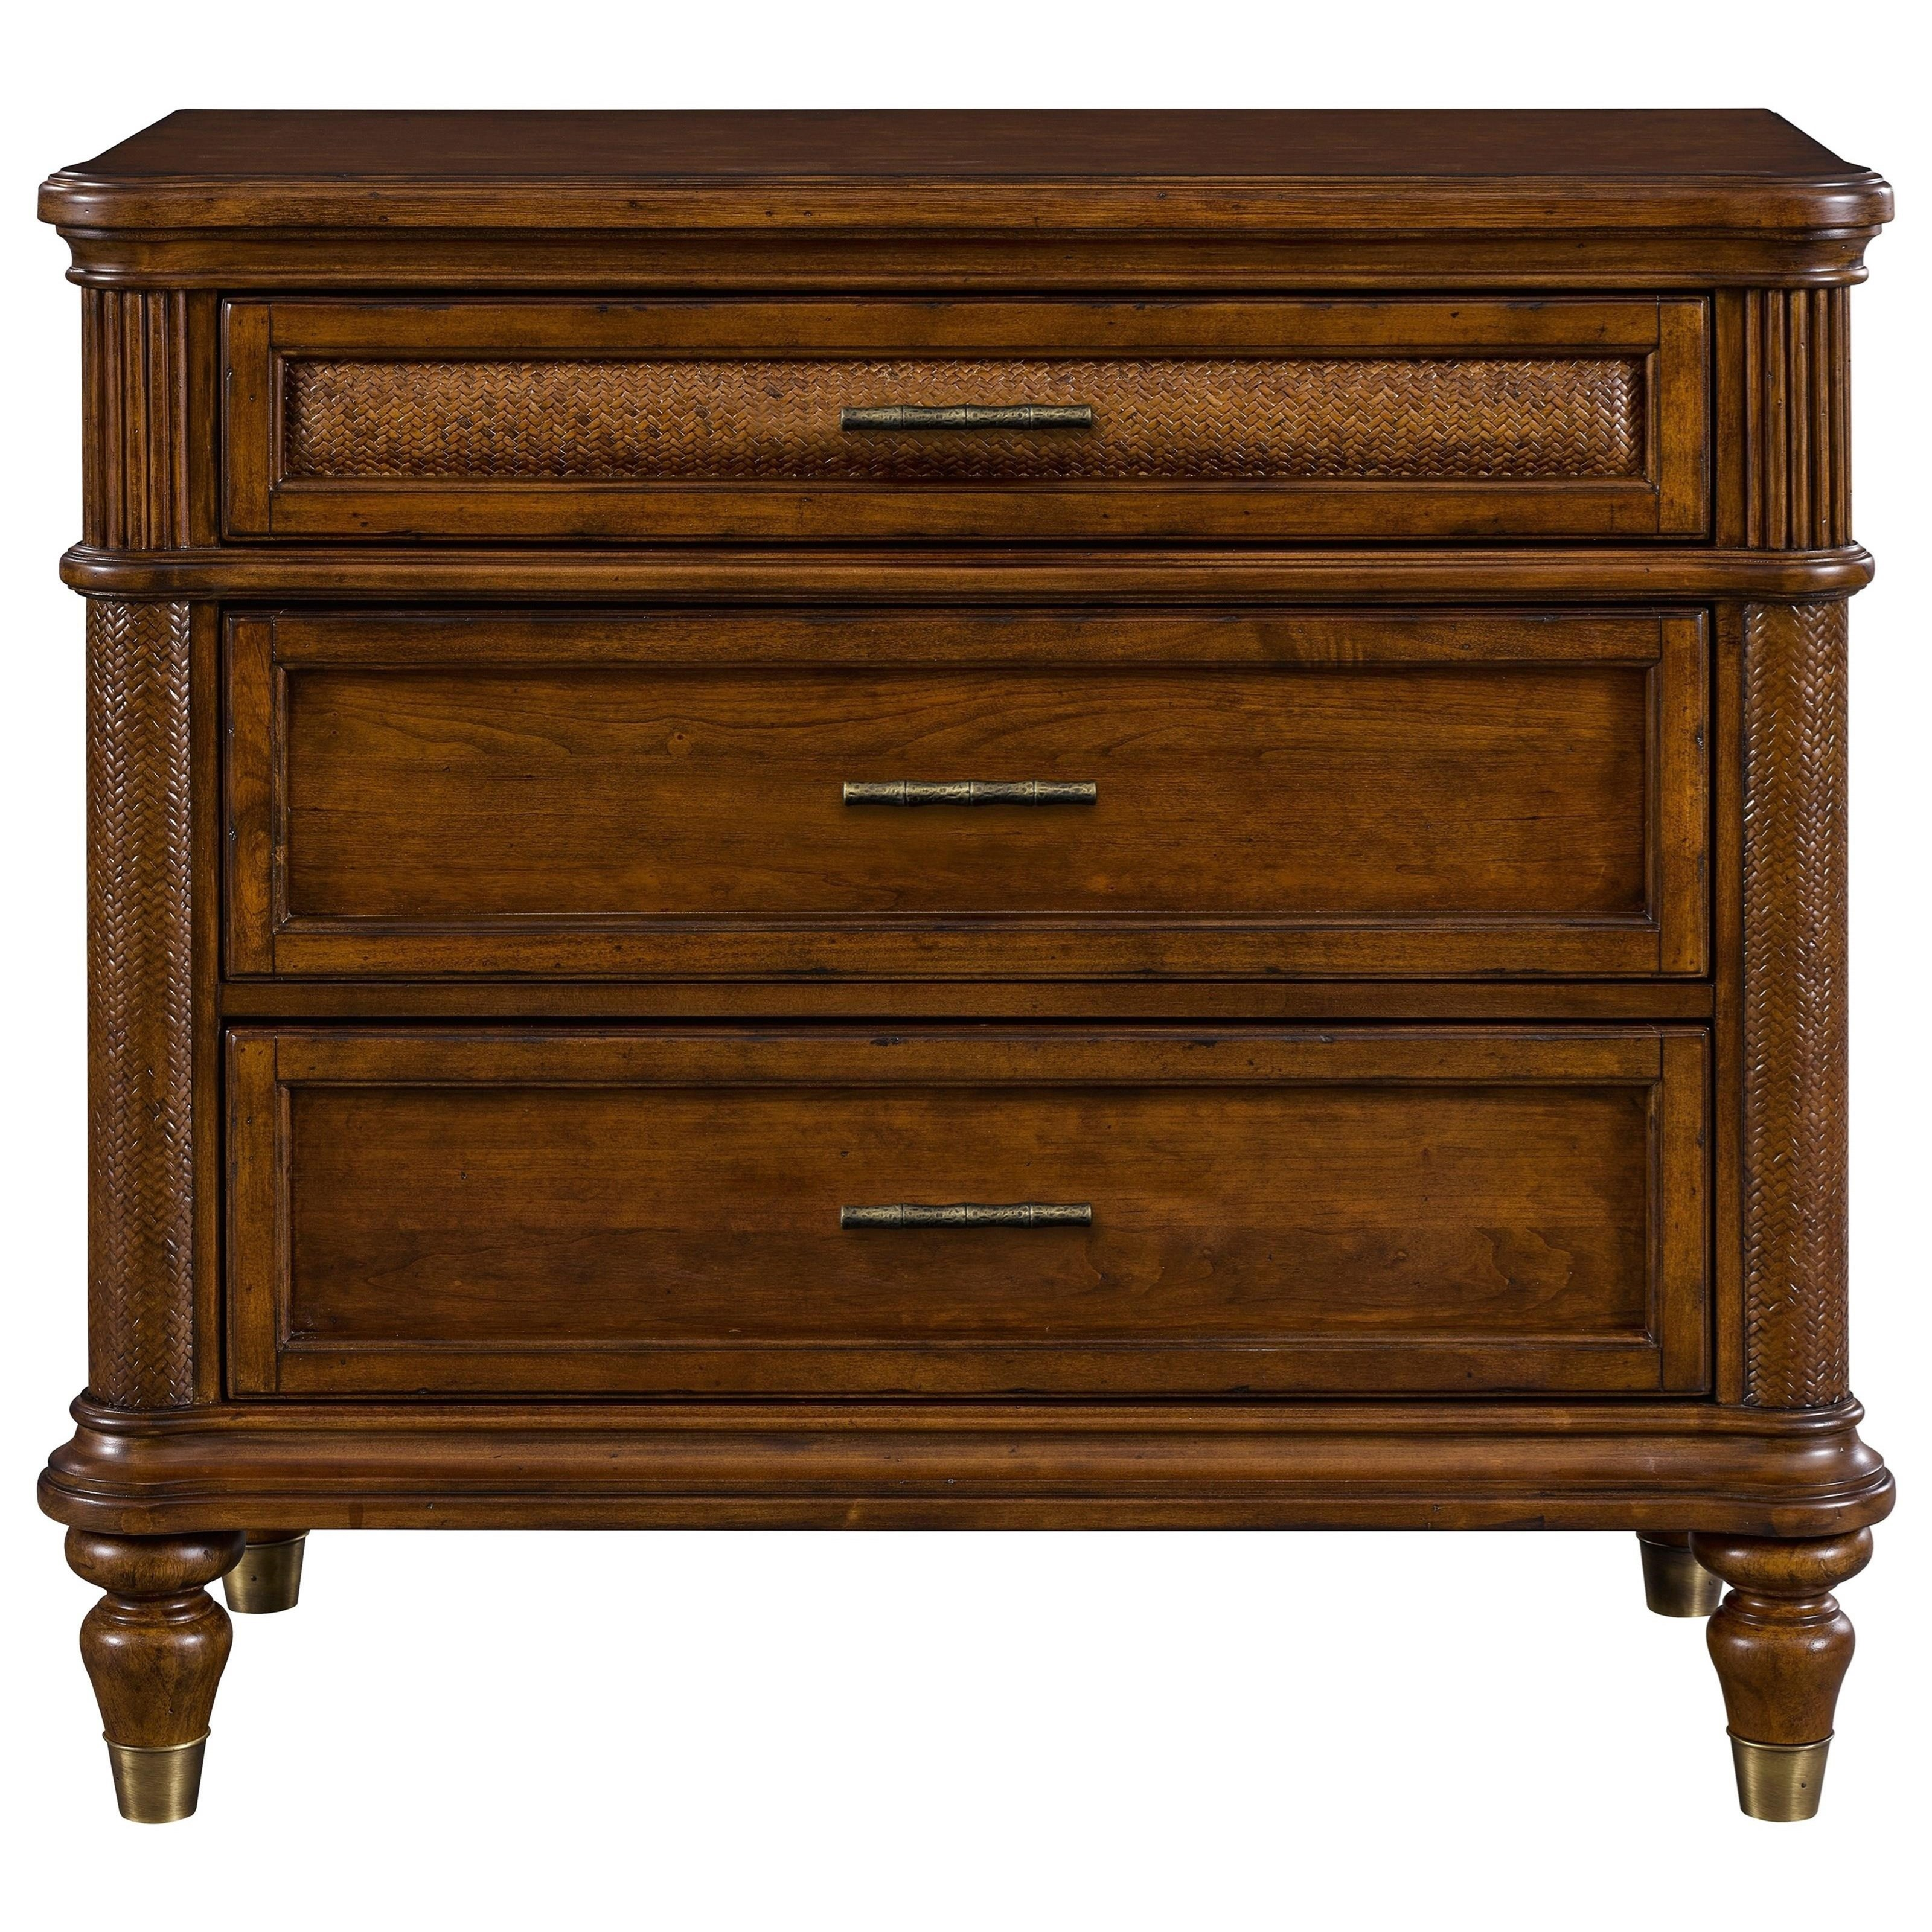 Broyhill Furniture Amalie Bay 4548 283 3 Drawer Bachelors Chest With Padded Raffia Hudson 39 S